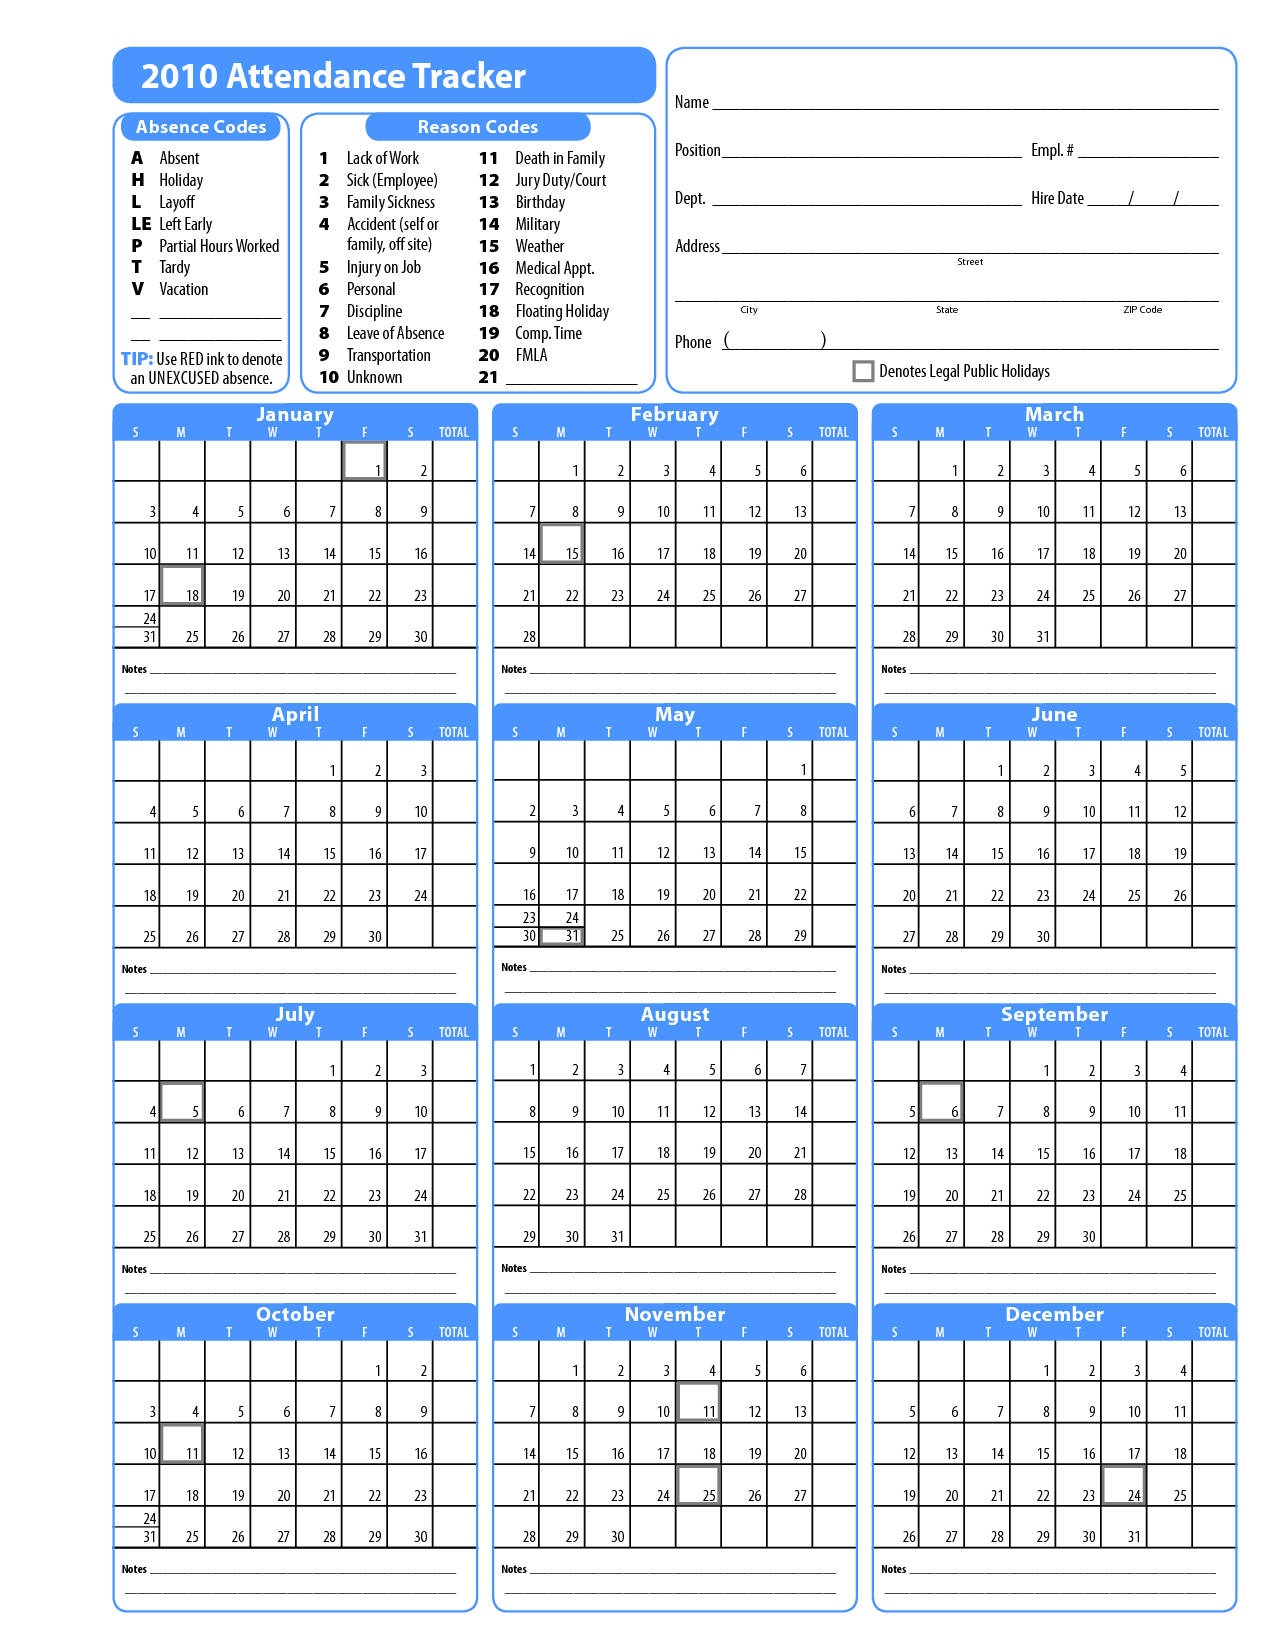 10 Best Images of Printable Employee Attendance Calendar Template